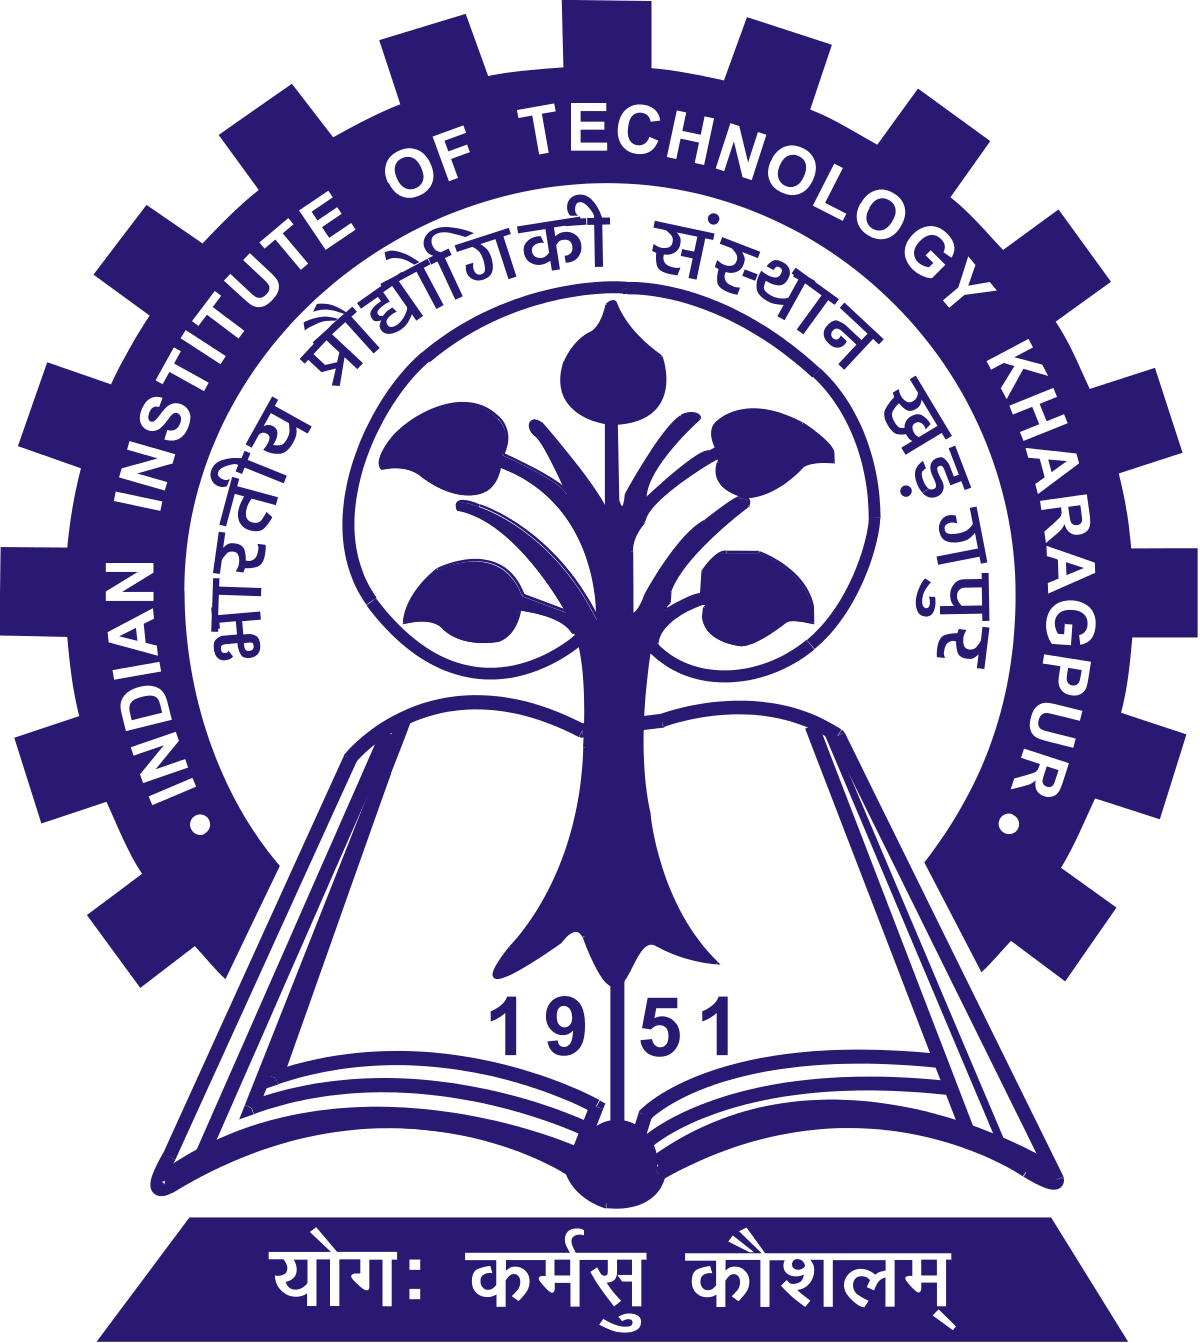 Indian Institute of Technology Kharagpur.